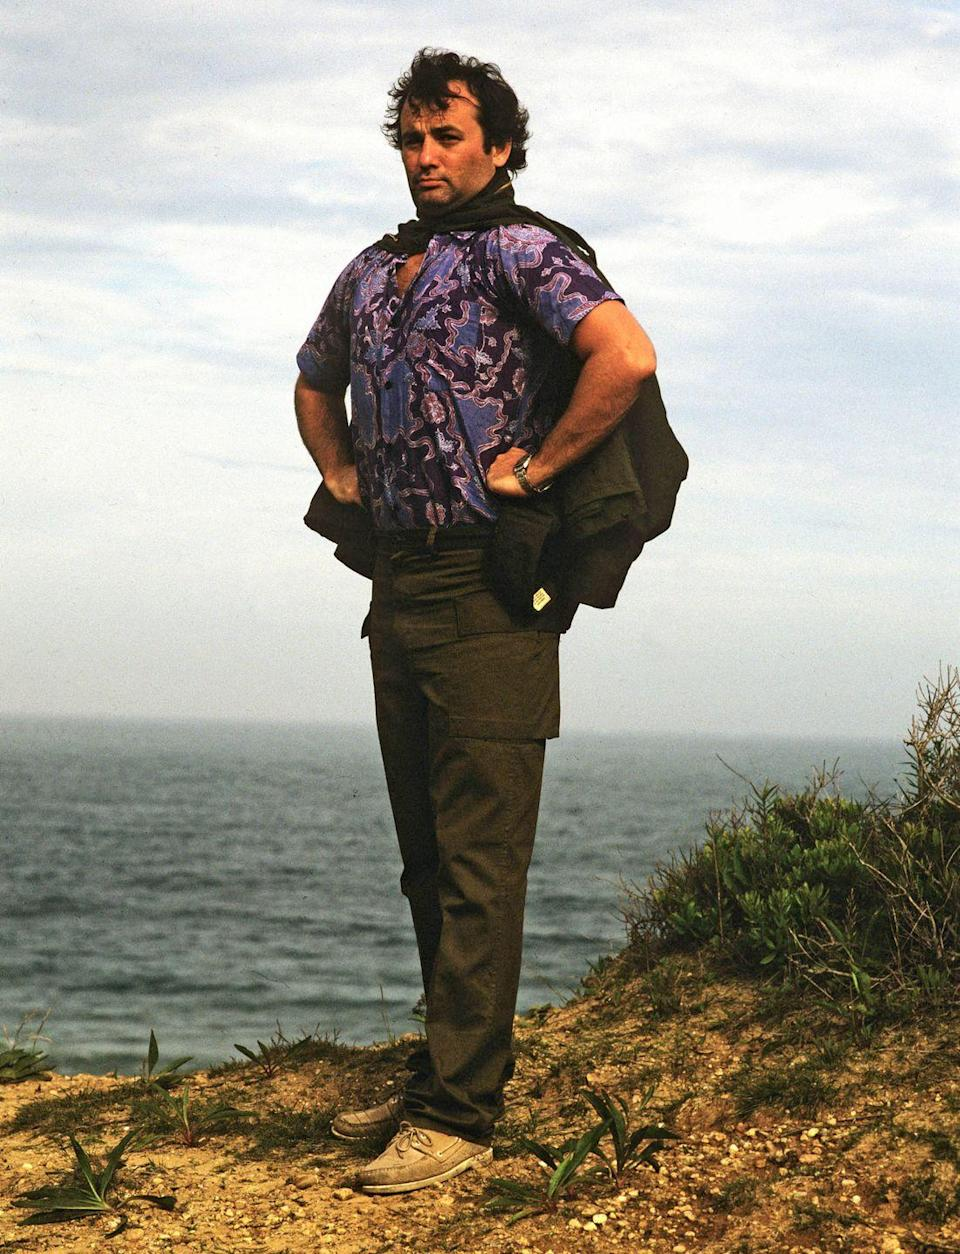 <p>Portrait of Bill Murray as he stands, hands on his hips, on a sea-side cliff-edge during a photoshoot for Rolling Stone magazine, 1981.</p>